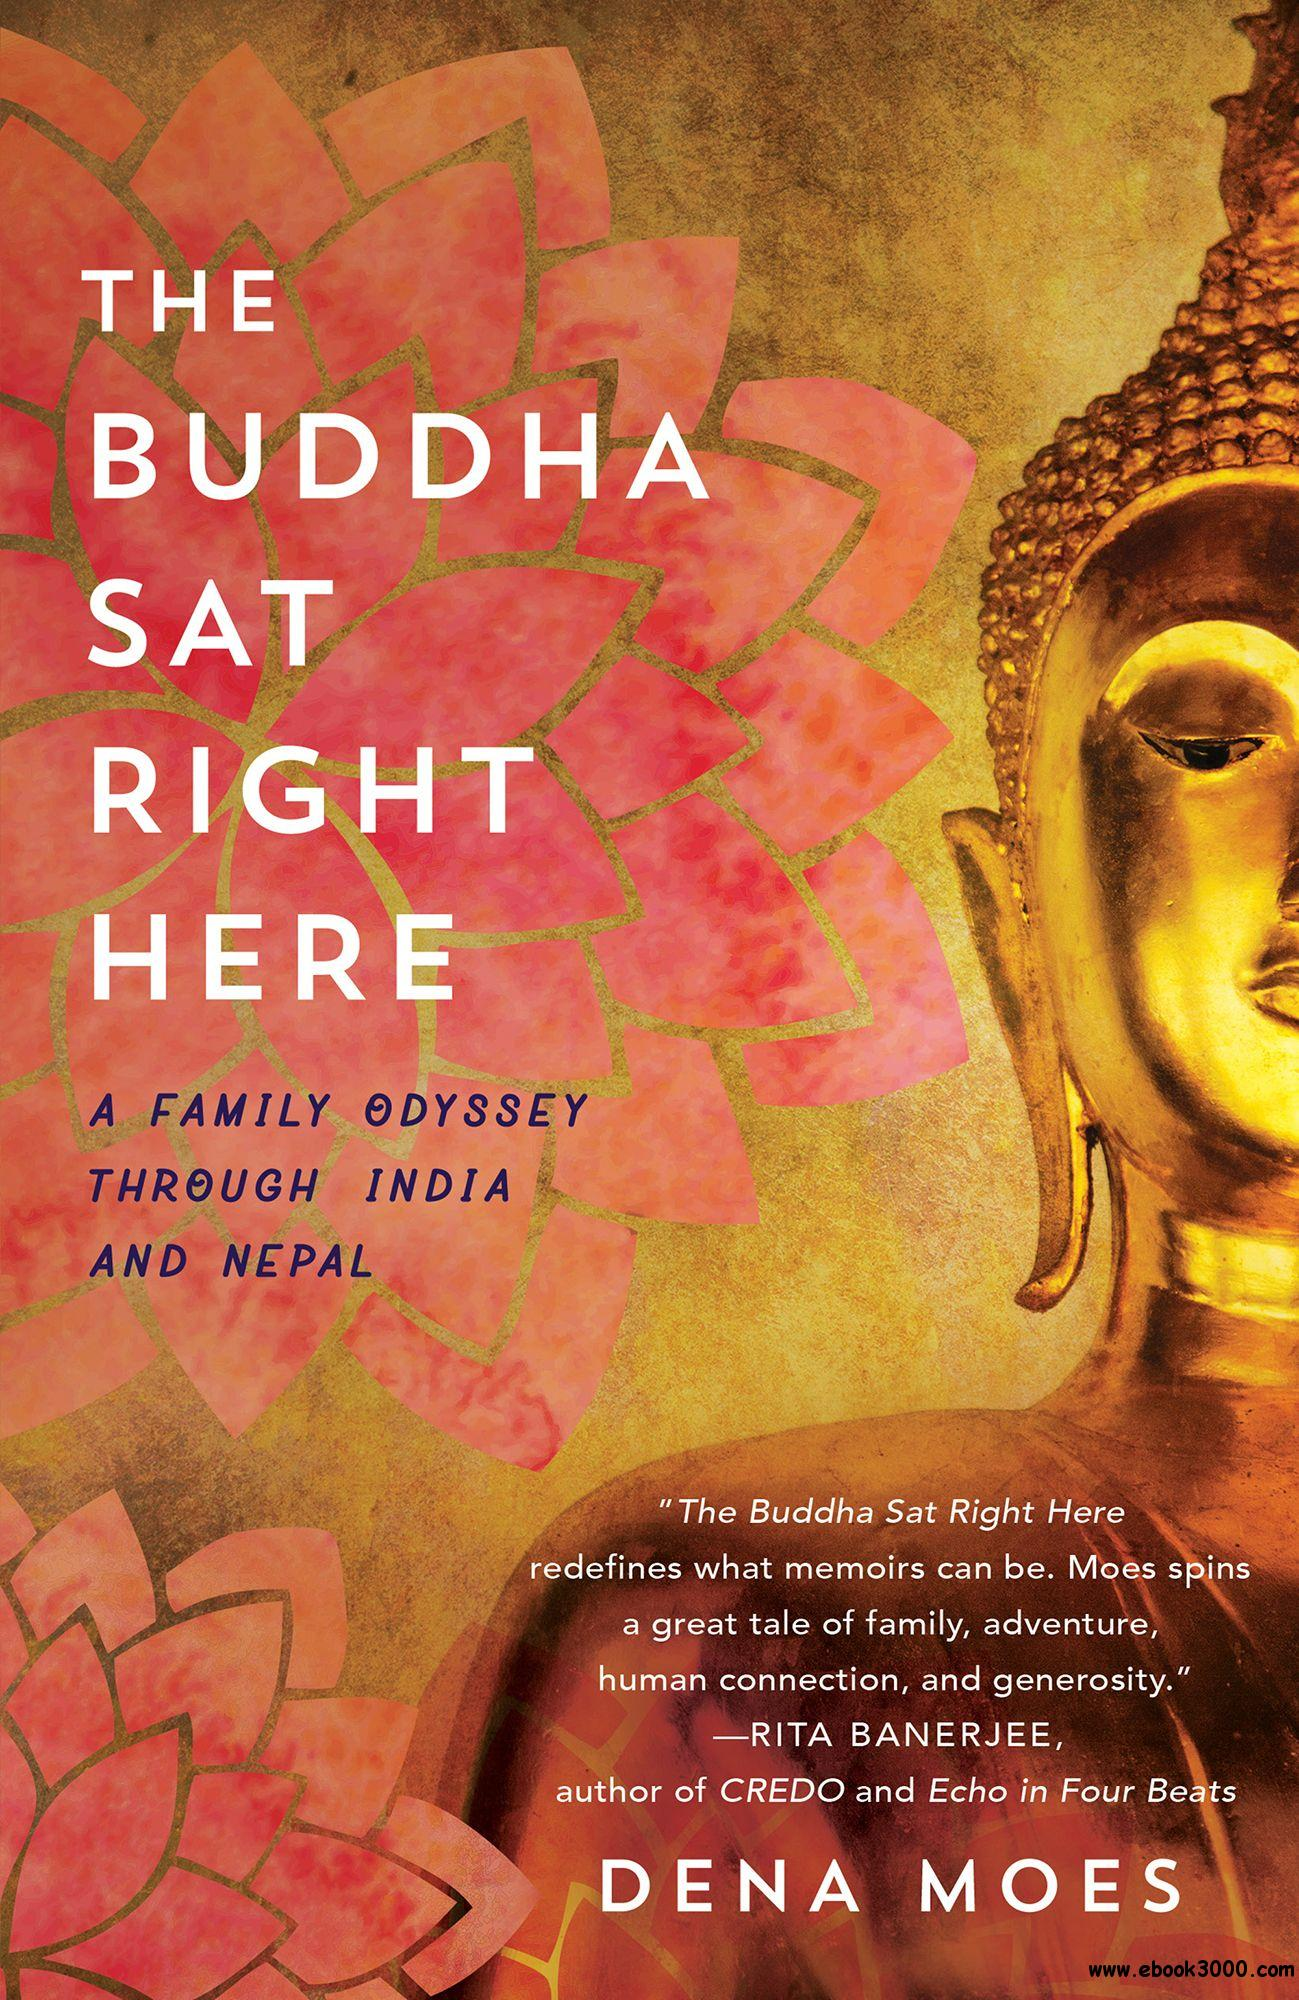 The Buddha Sat Right Here: A Family Odyssey Through India and Nepal